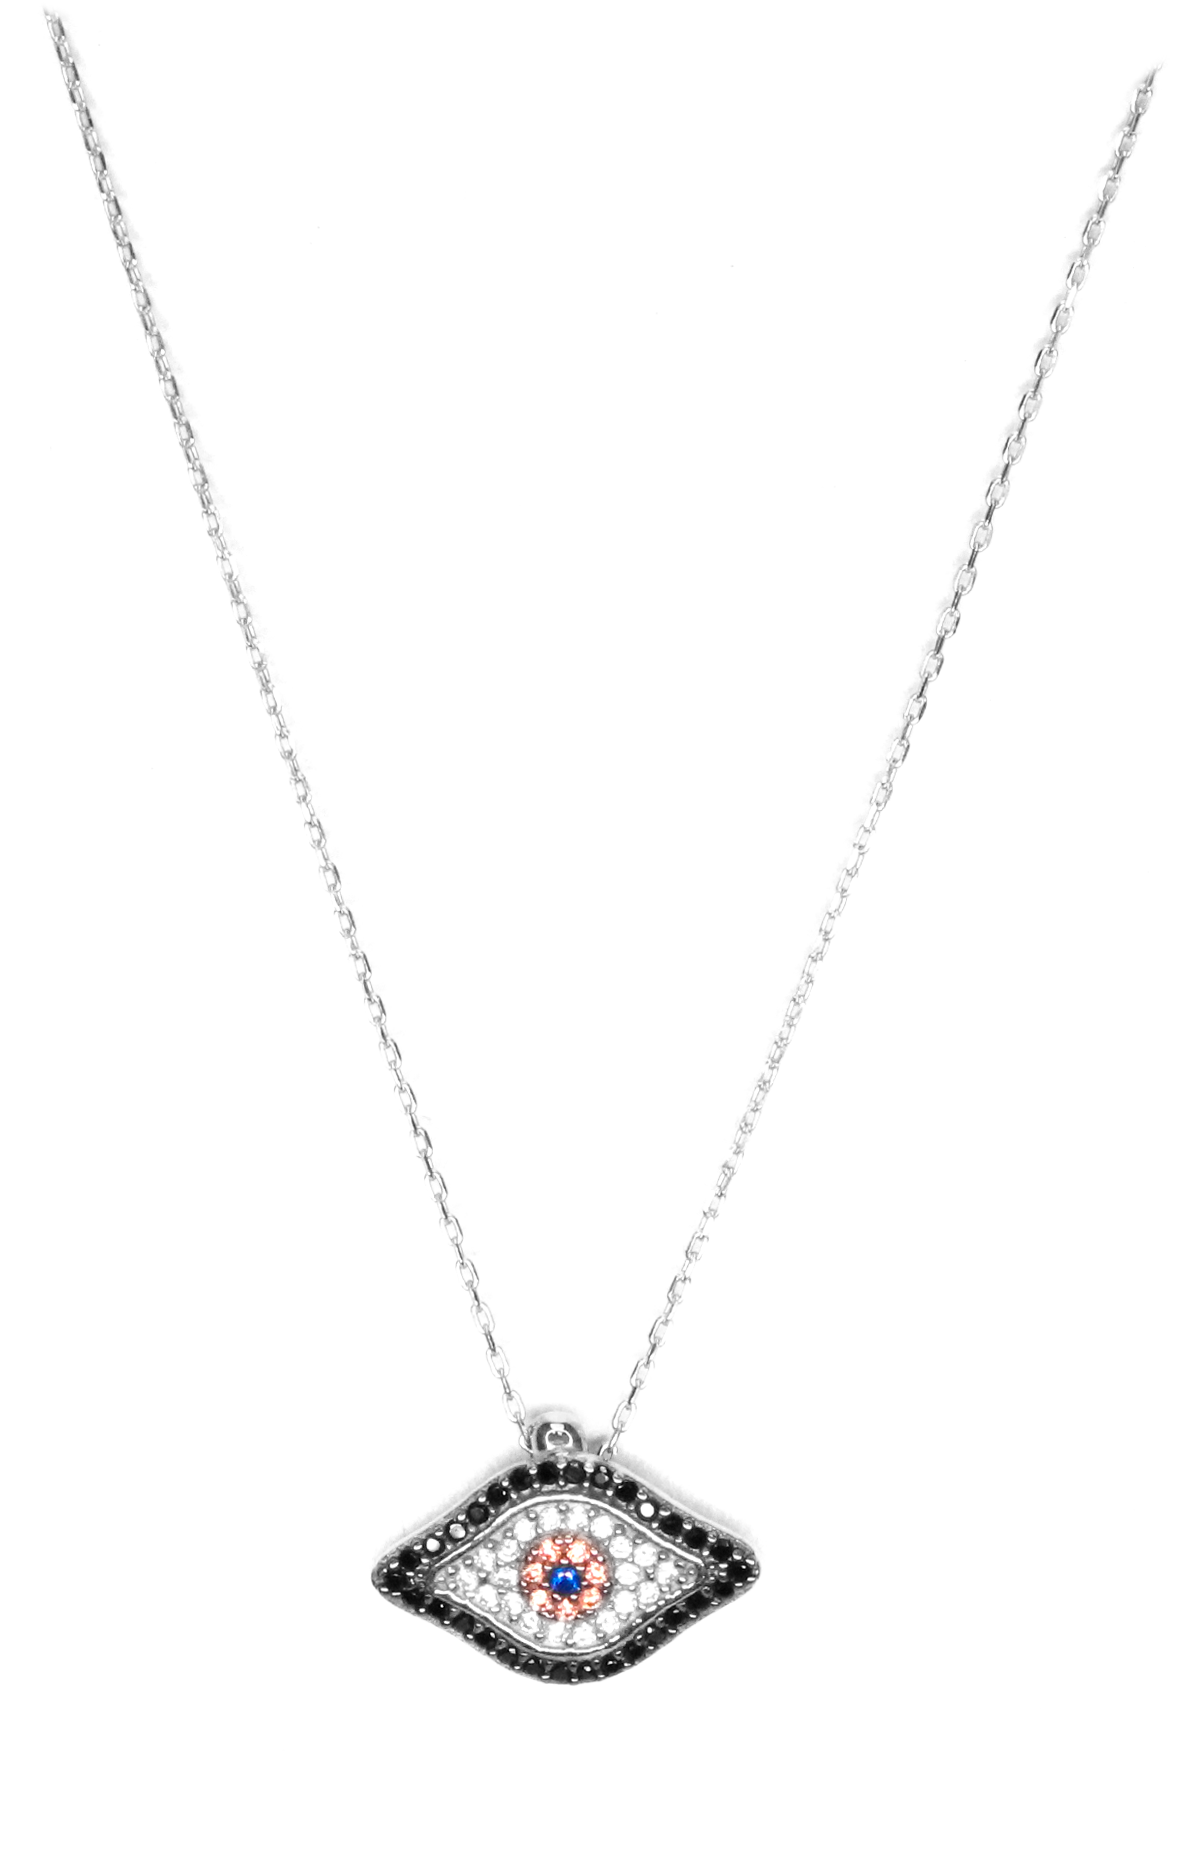 Black & Champagne Cz Evil Eye Necklace - Silver